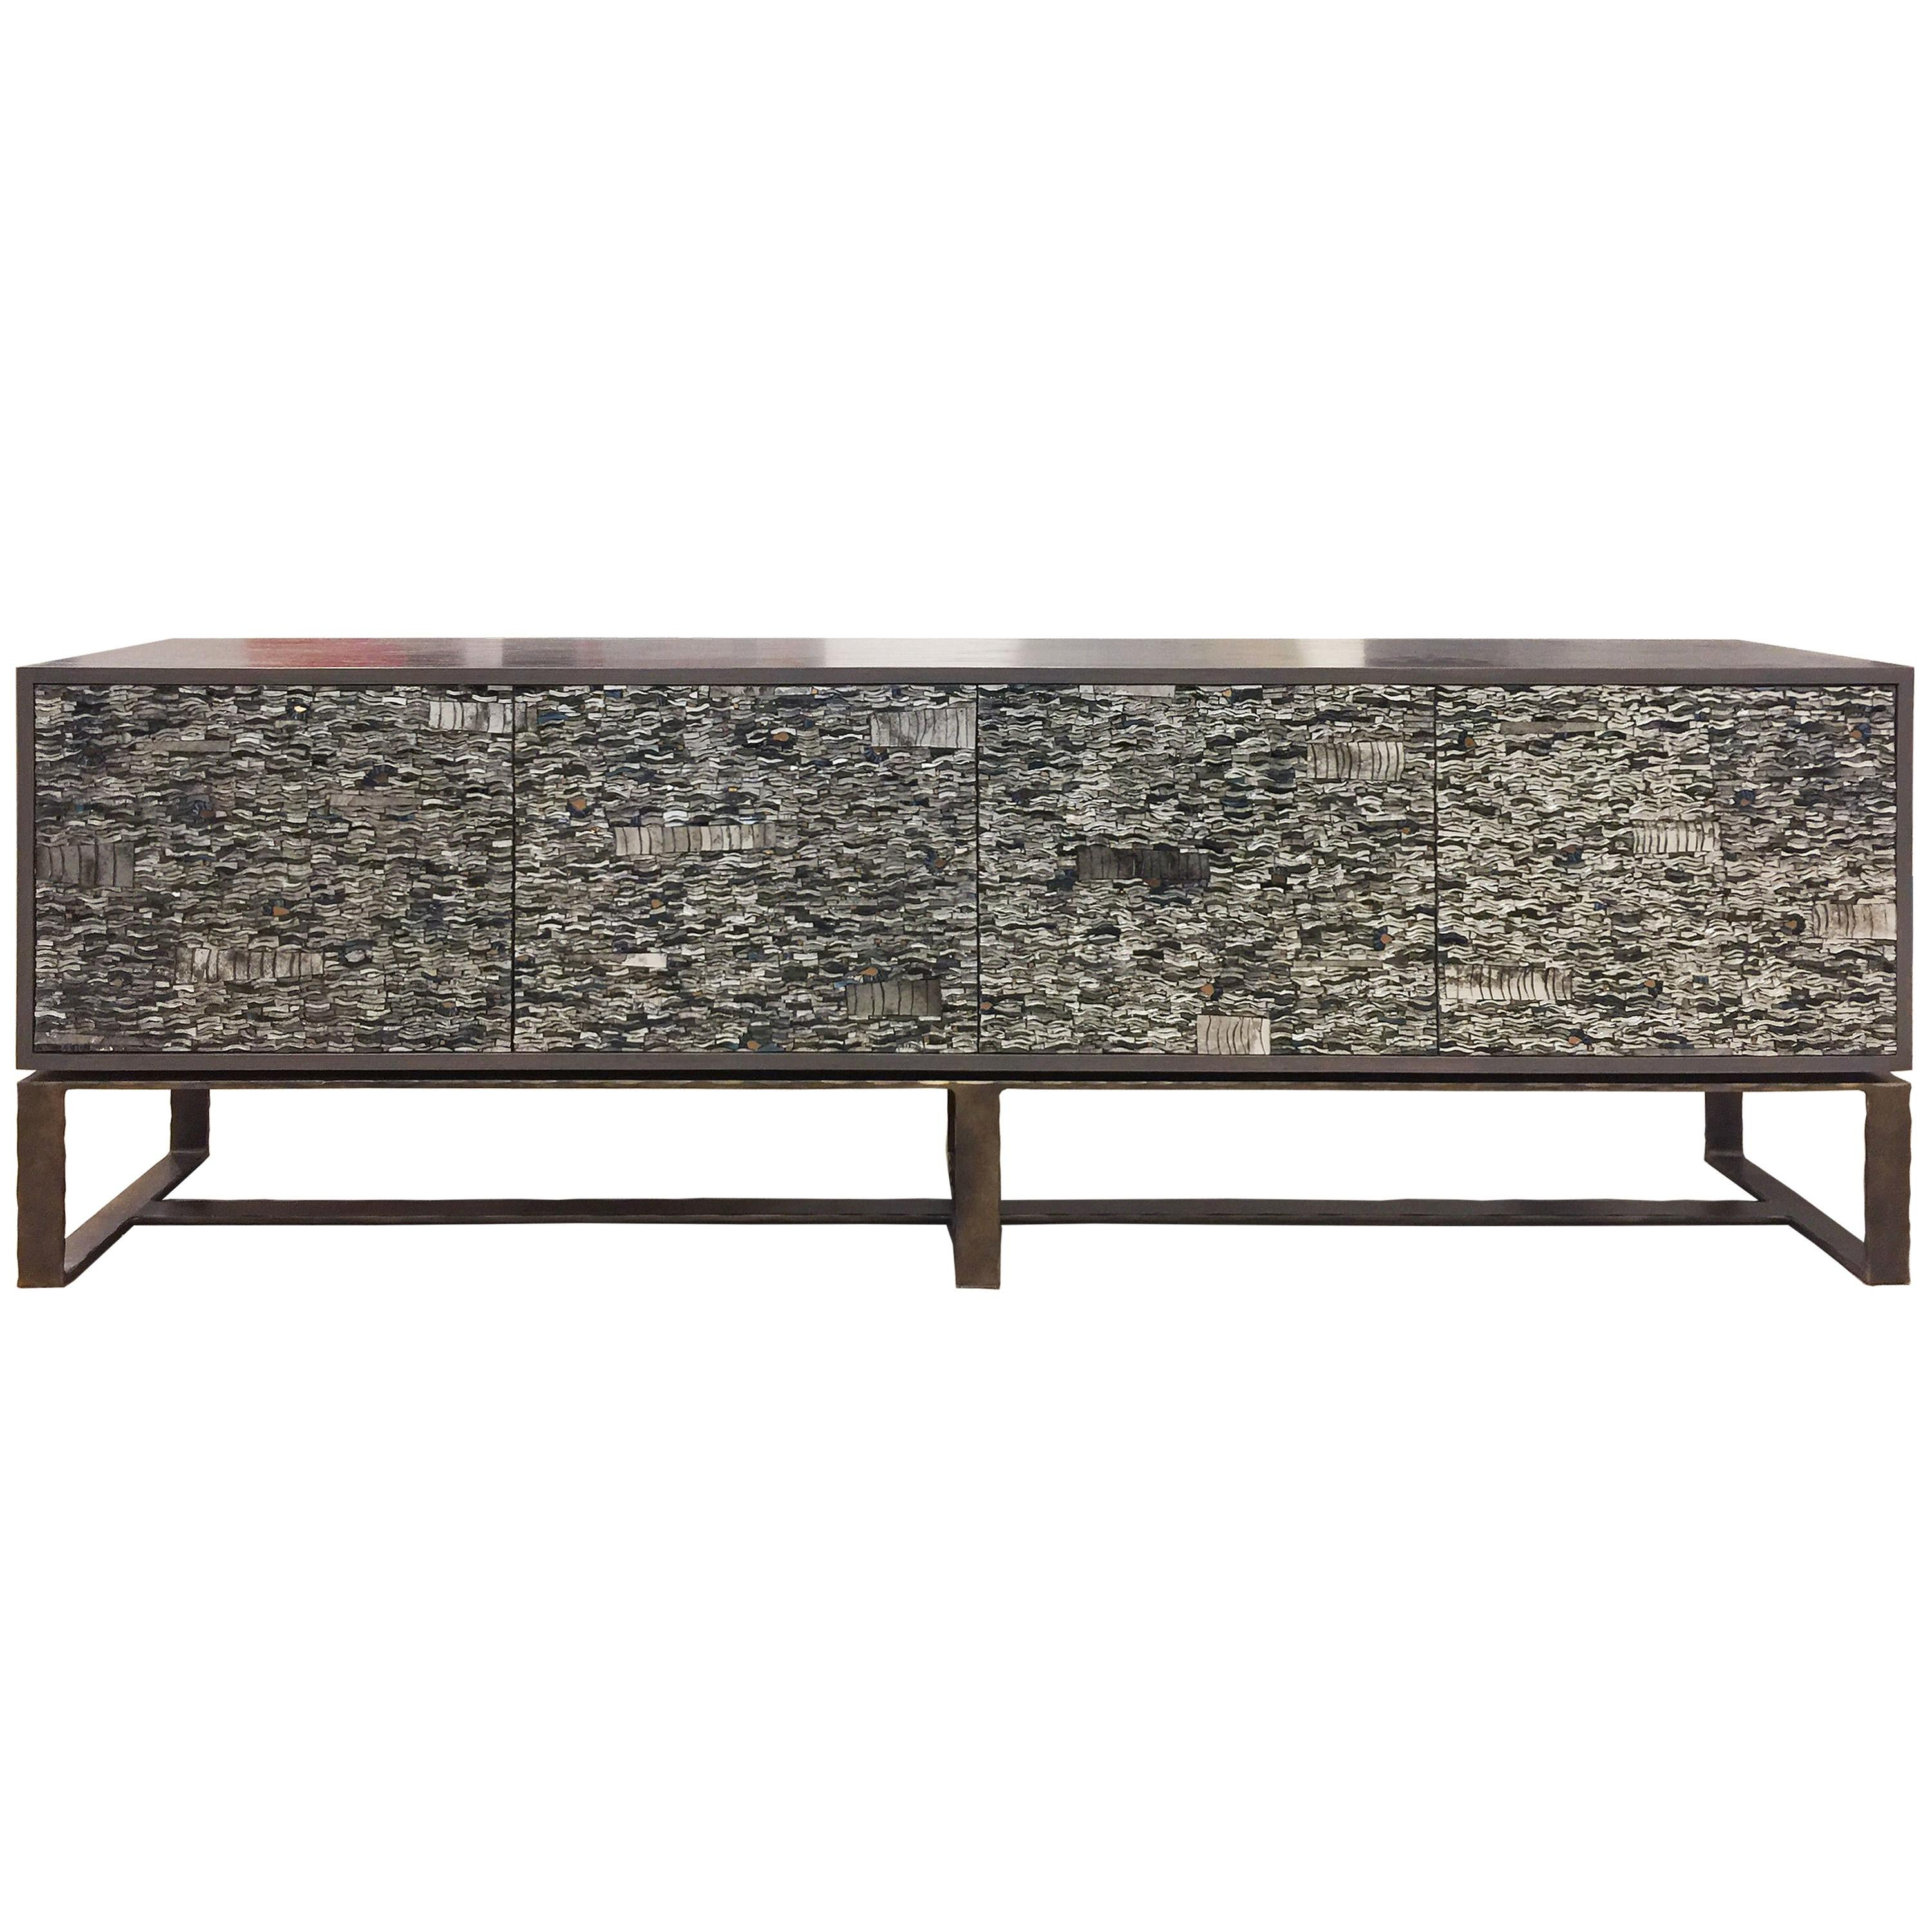 Customizable Gray Ravenna Glass Mosaic Cabinet with Metal Base by Ercole Home